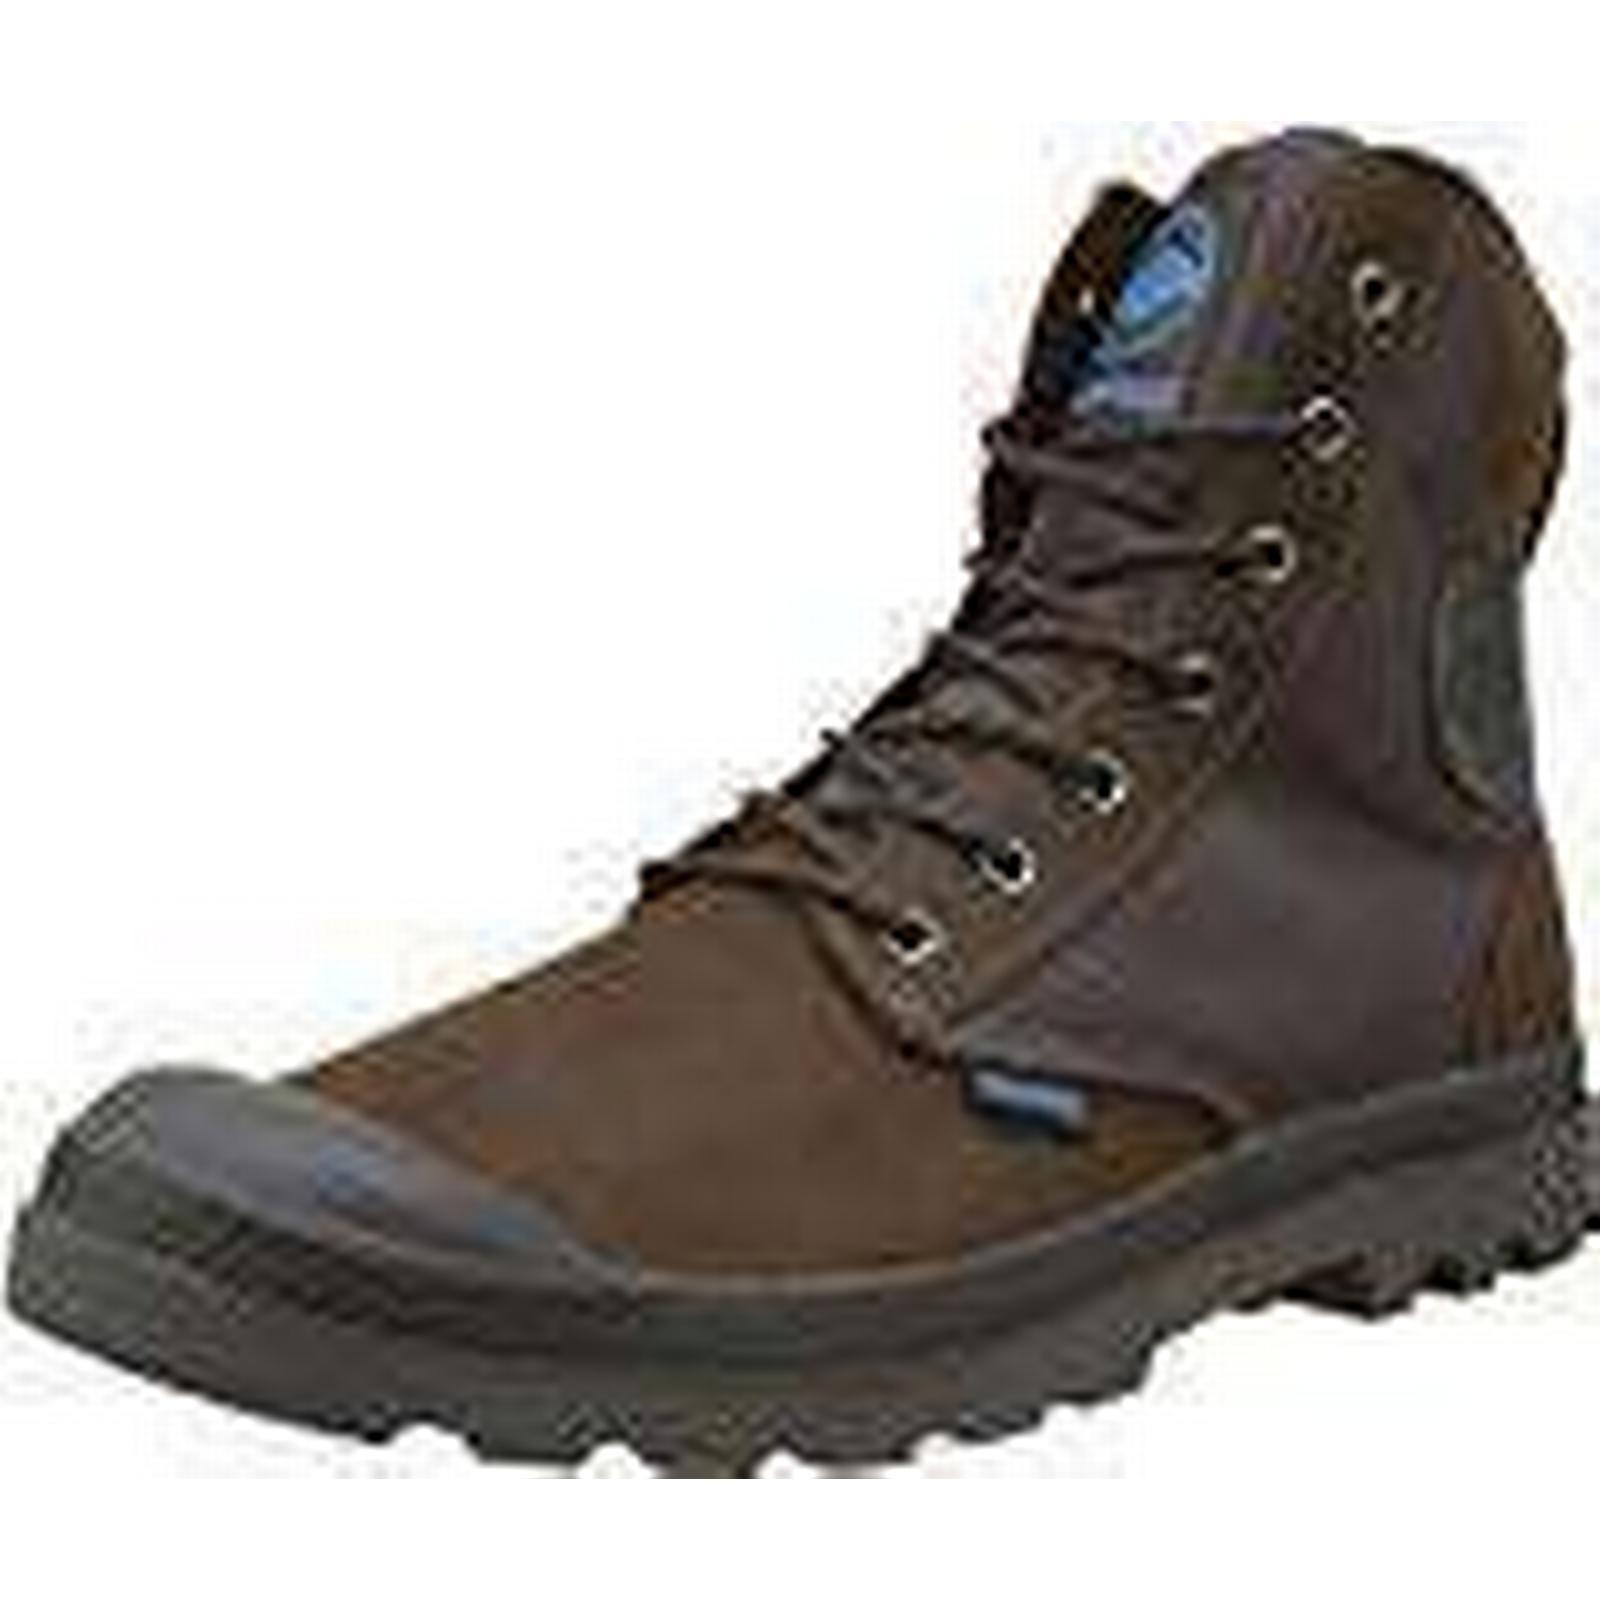 Palladium Unisex Adults' SPOR CUF Wpn U Hi-Top Trainers, Brown UK Chocolate/Forged Iron F01, 6 UK Brown 6 UK 9412fc